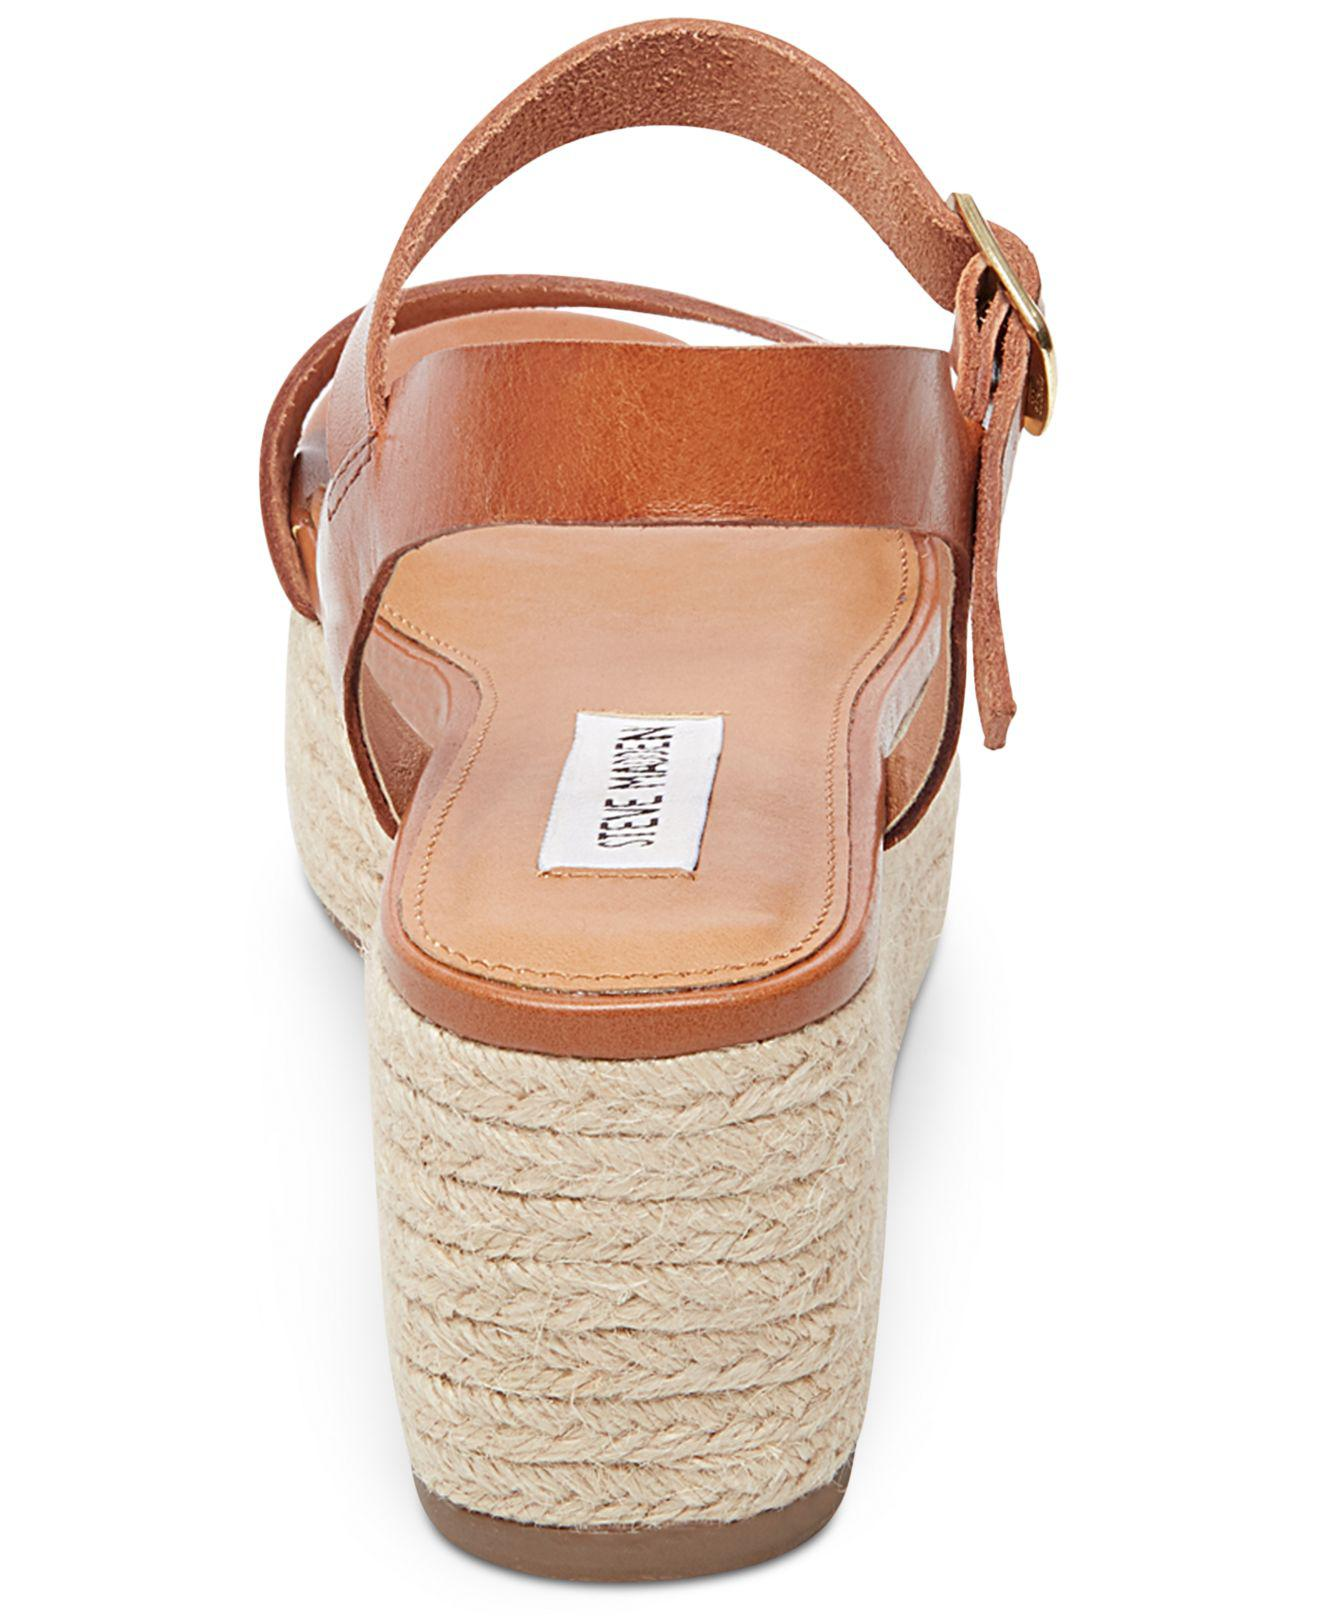 b56cb07be16 Lyst - Steve Madden Busy Espadrille Wedge Sandals in Brown